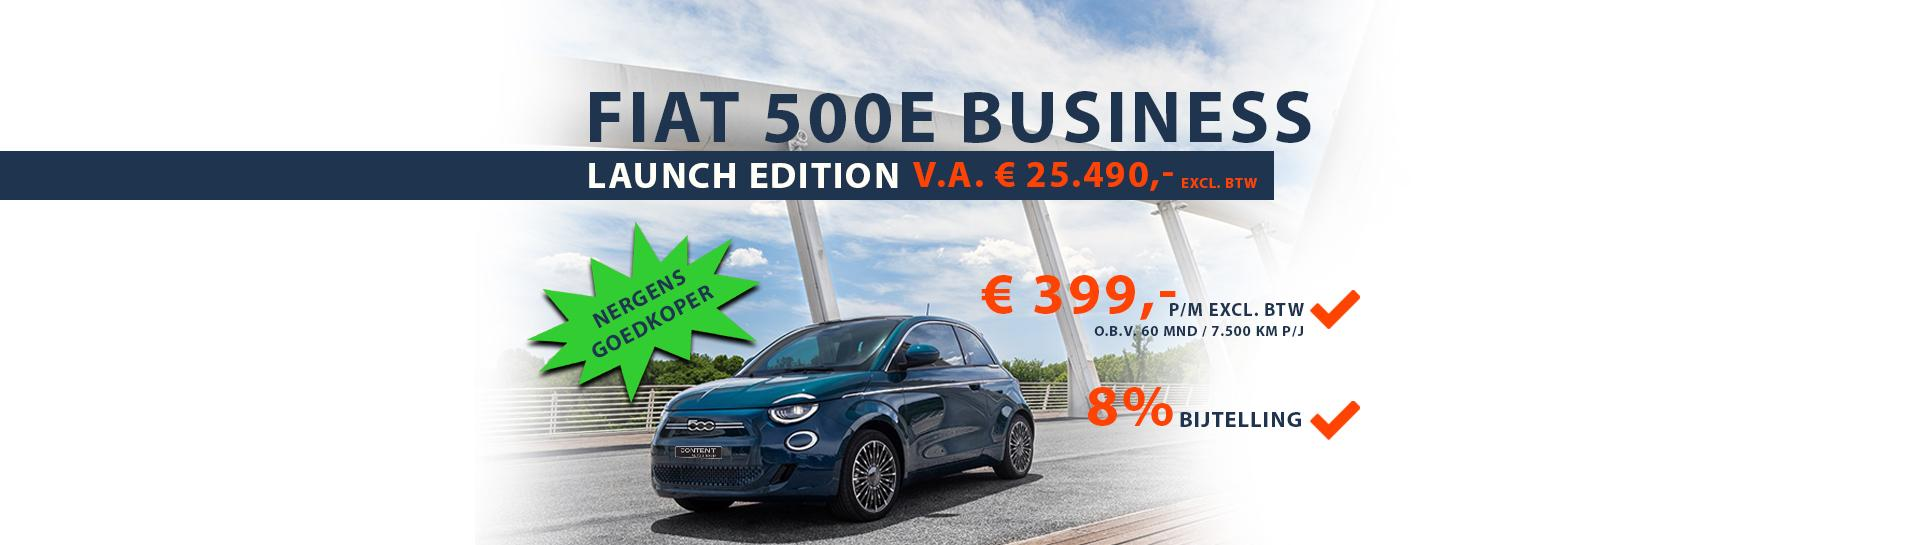 Fiat | 500E Business Launch Edition